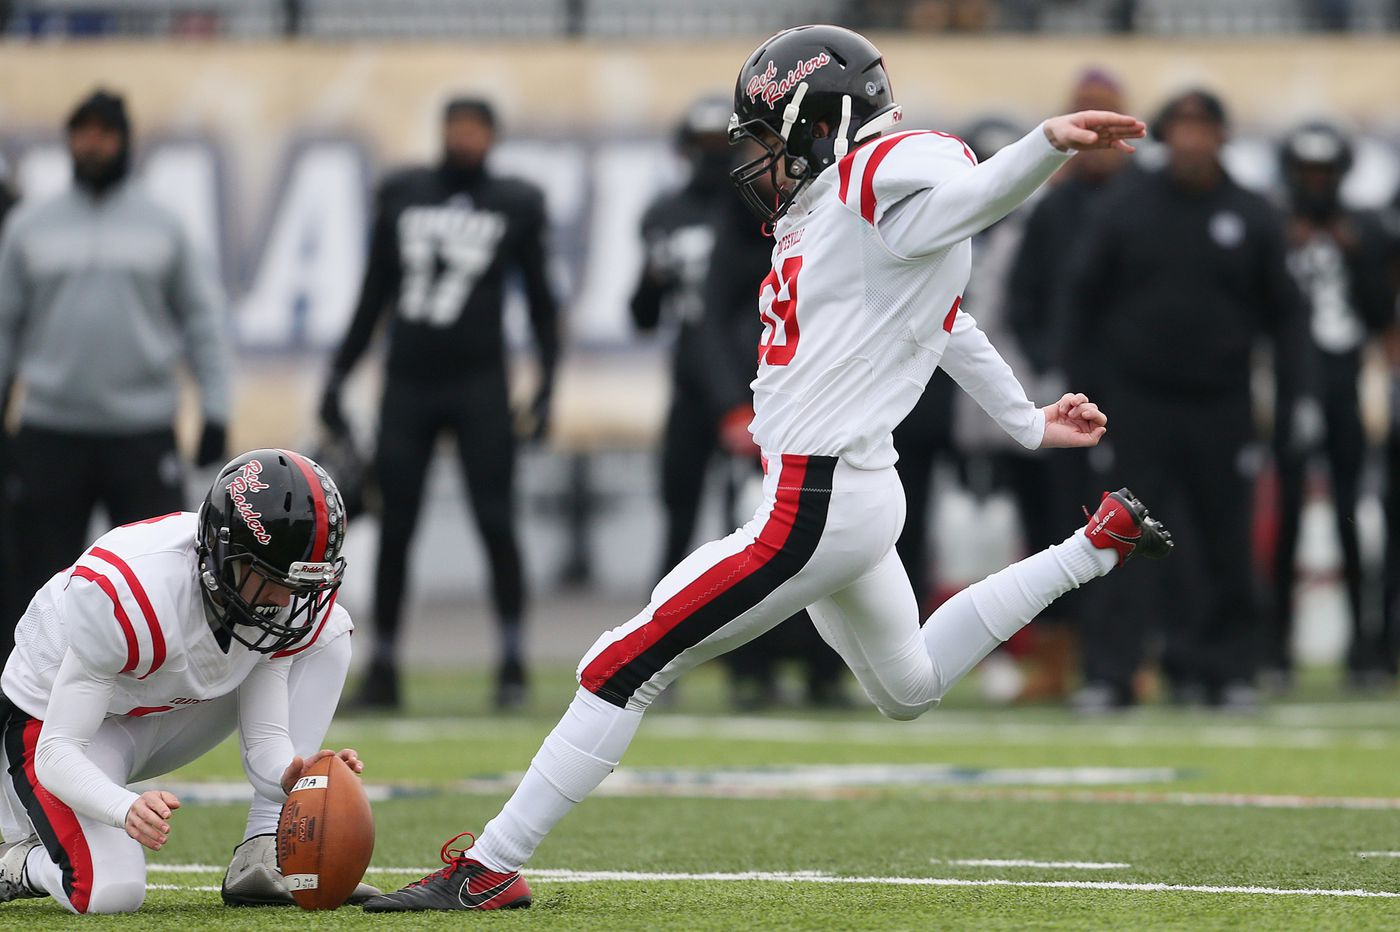 Coatesville's Than Hylen is top kicker | Southeastern Pa. Football Leaders